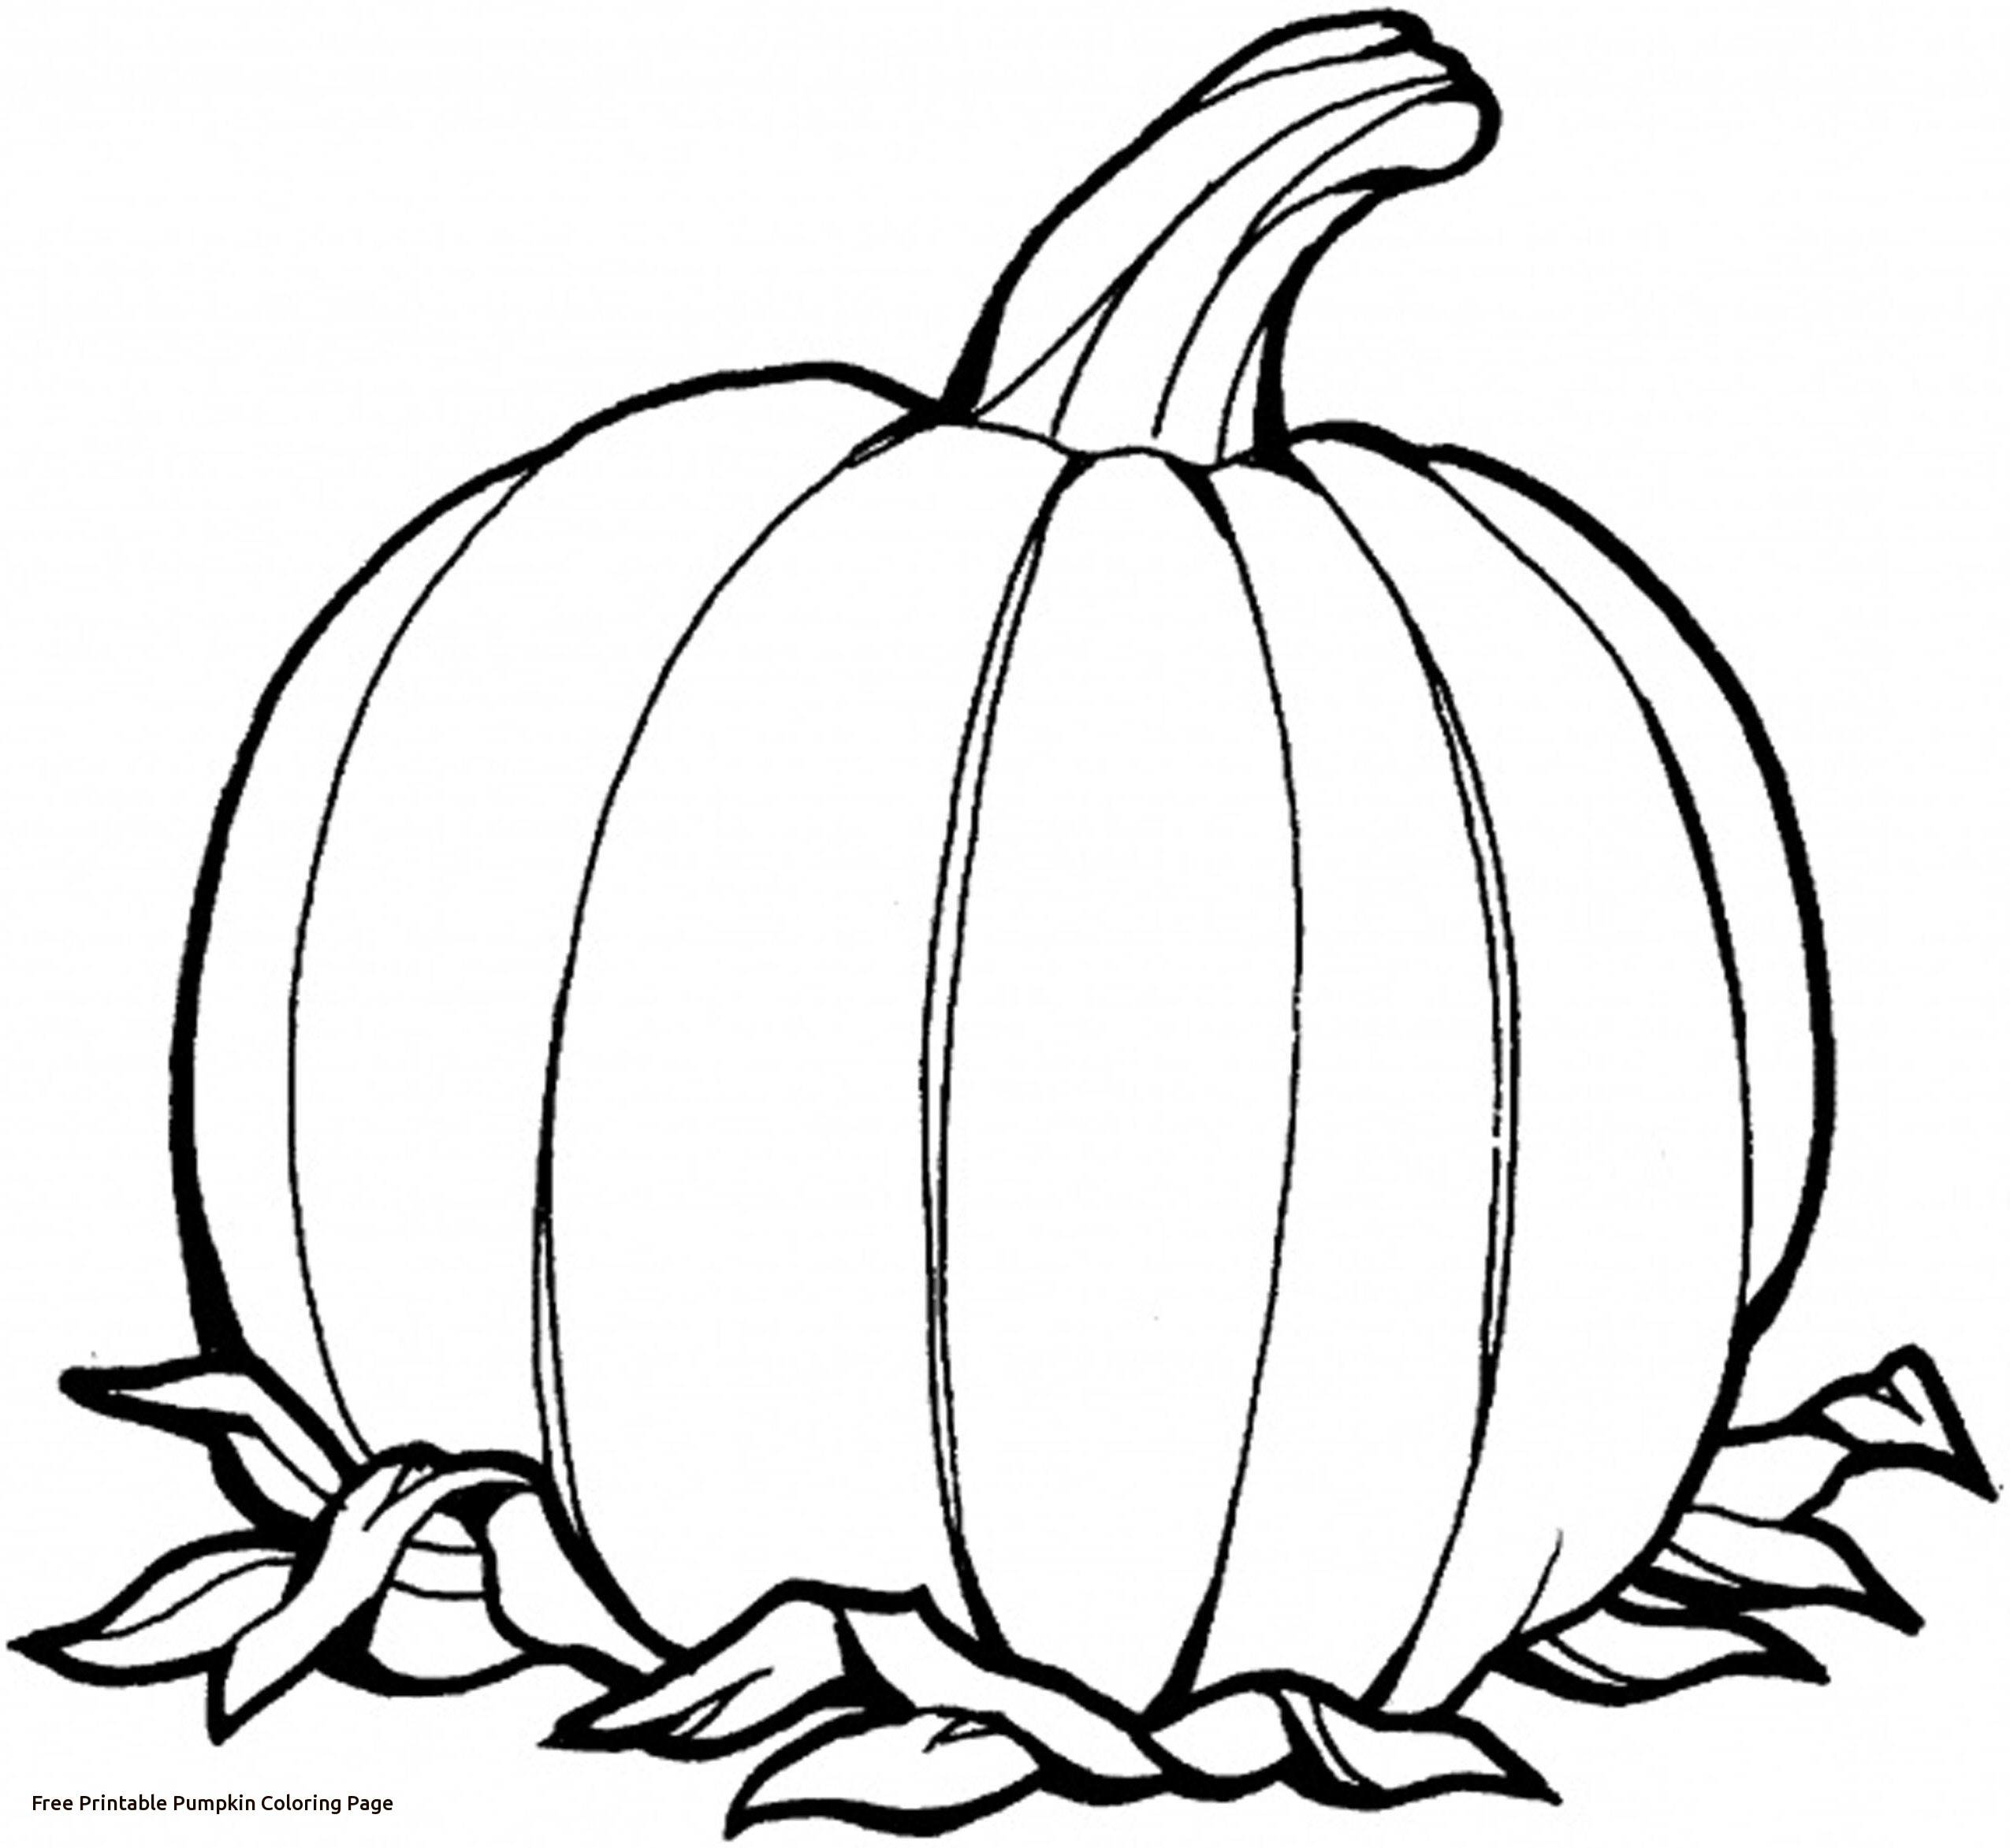 Pumpkin Outline Printable | Free download on ClipArtMag